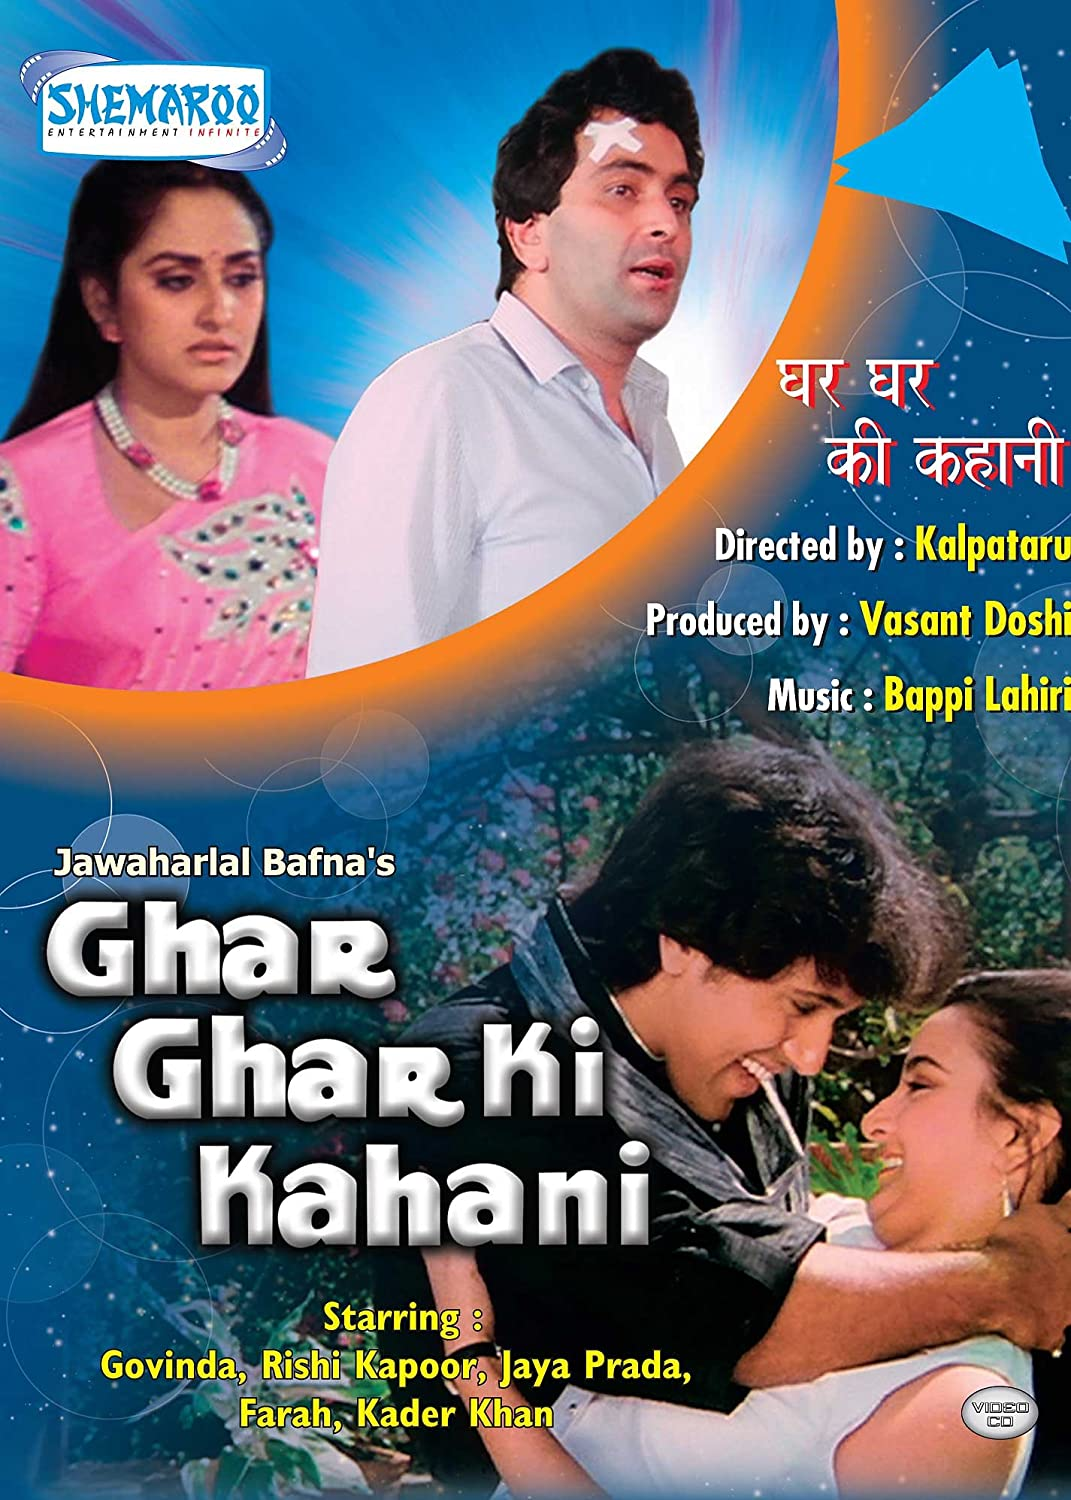 Amazon.in: Buy Ghar Ghar Ki Kahani DVD, Blu-ray Online at Best Prices in  India | Movies & TV Shows